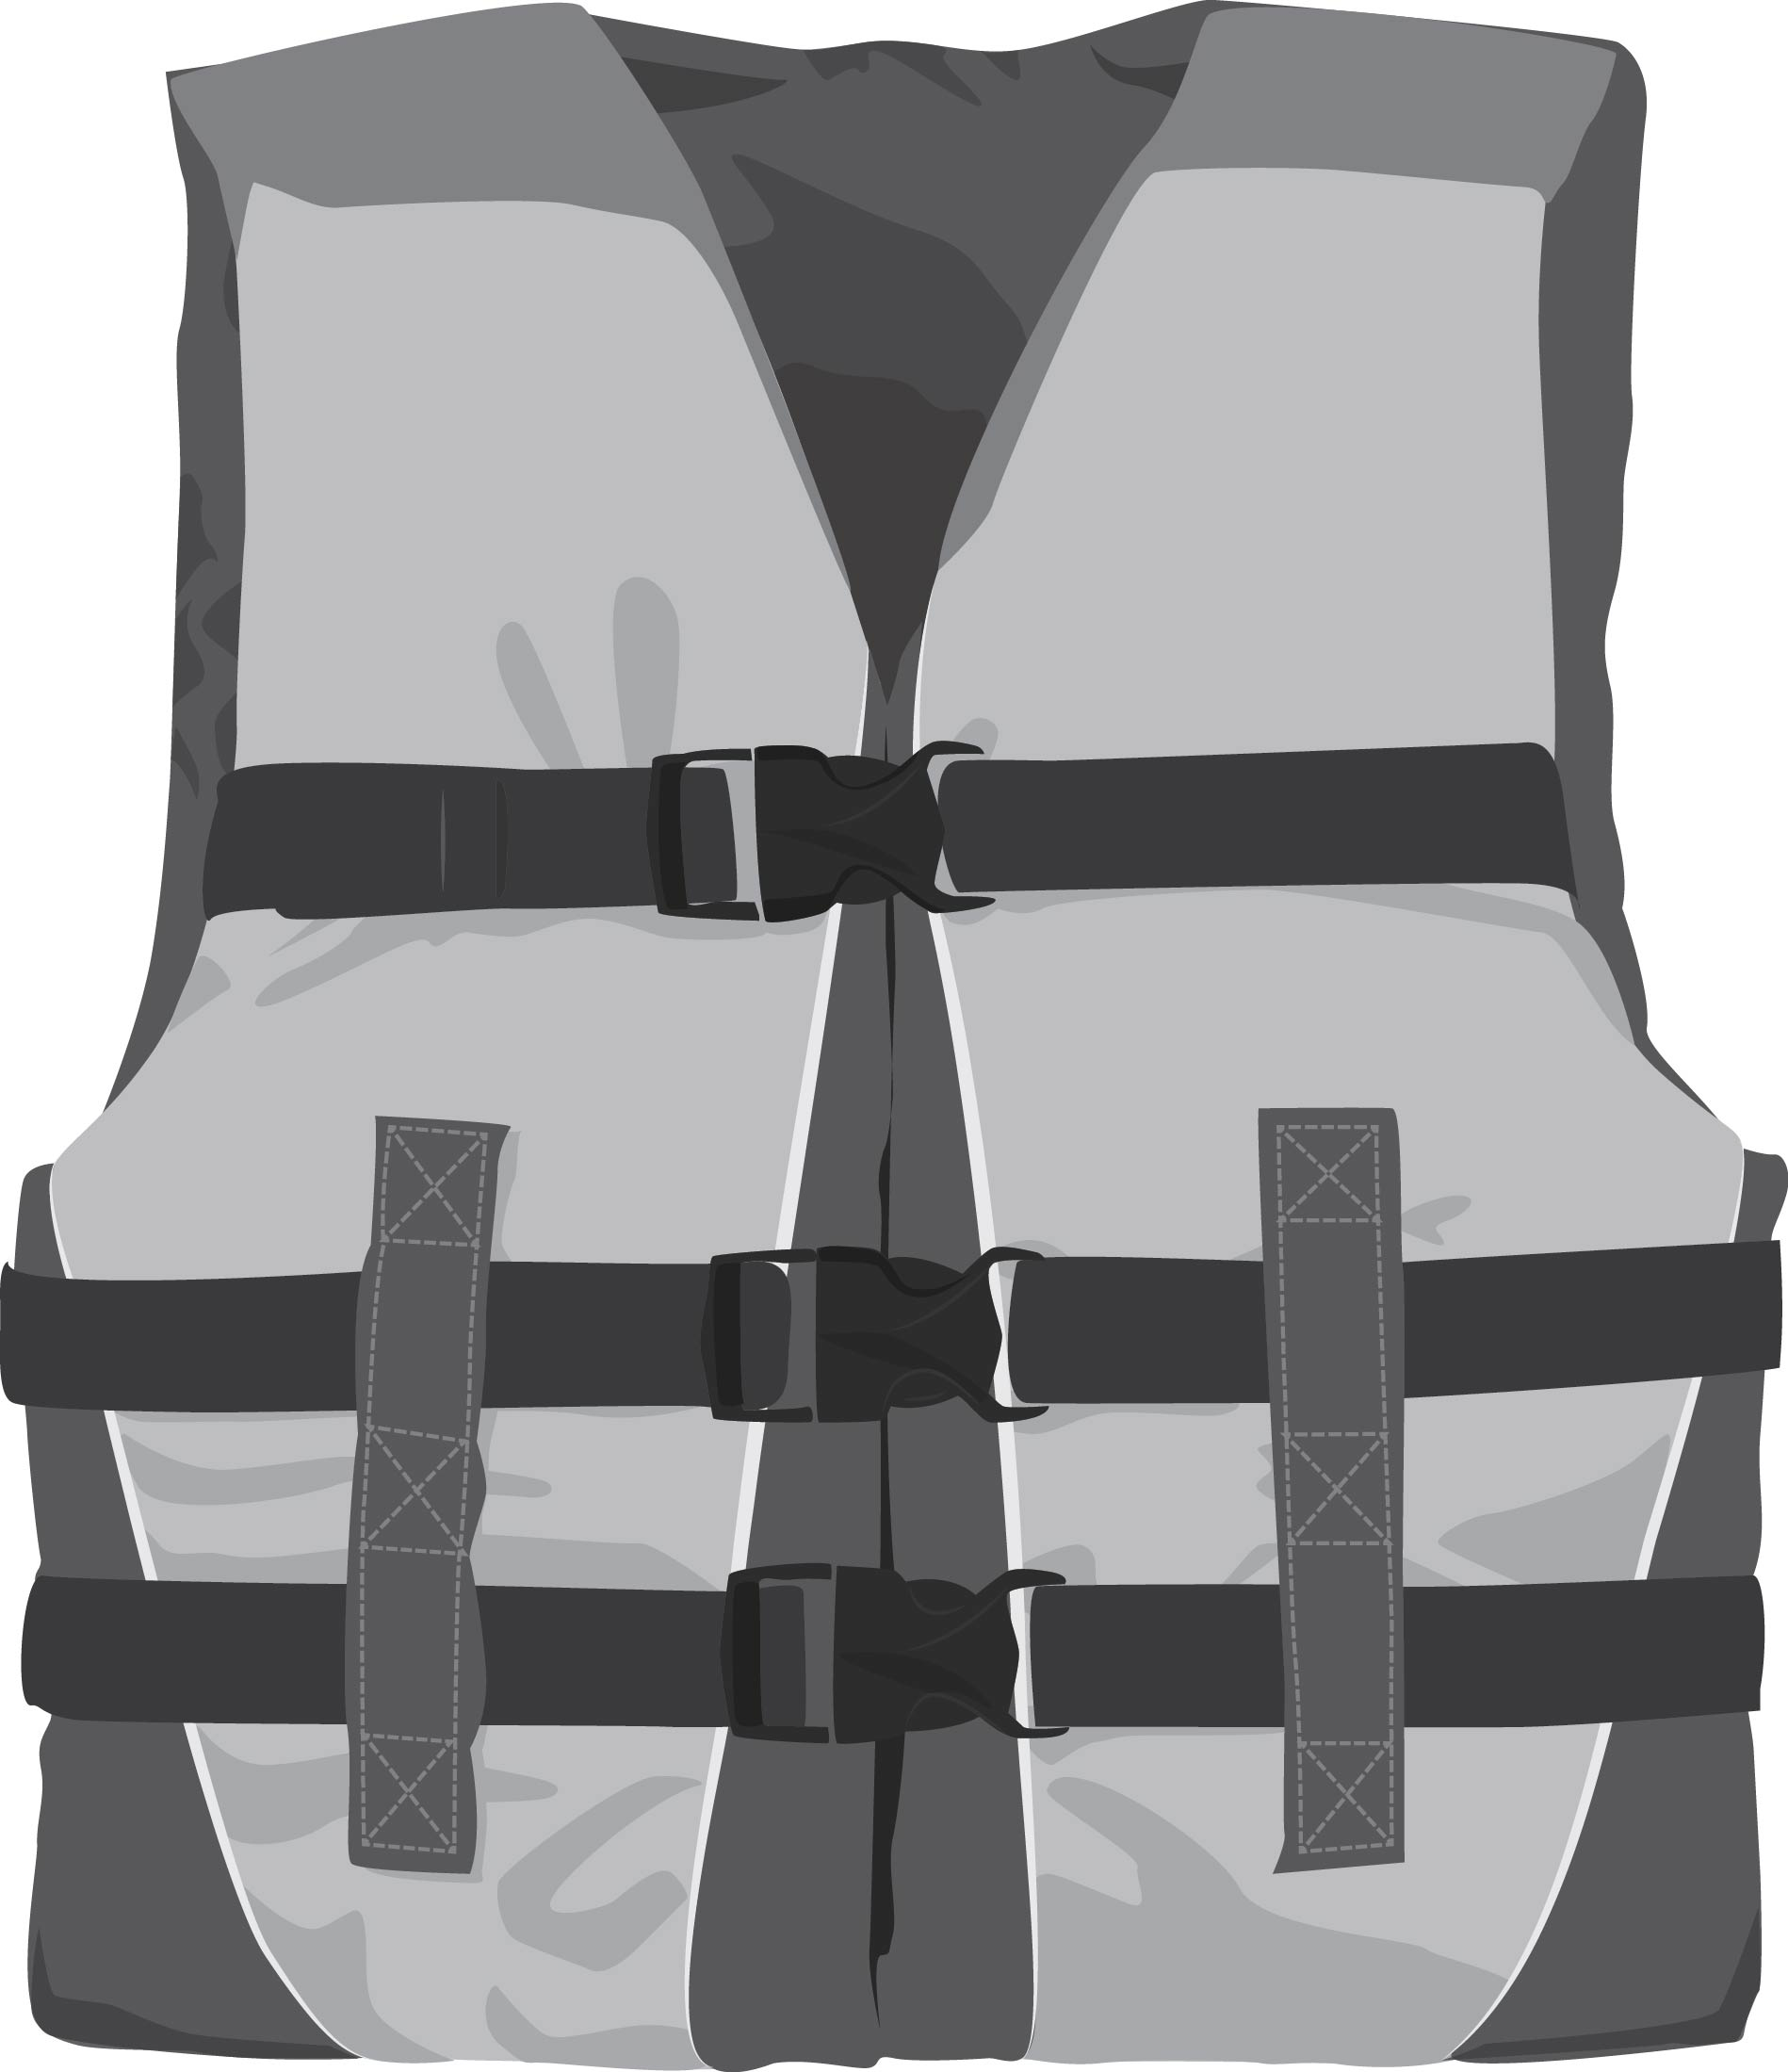 How to Buy a Life Vest | PRO TIPS by DICK'S Sporting Goods